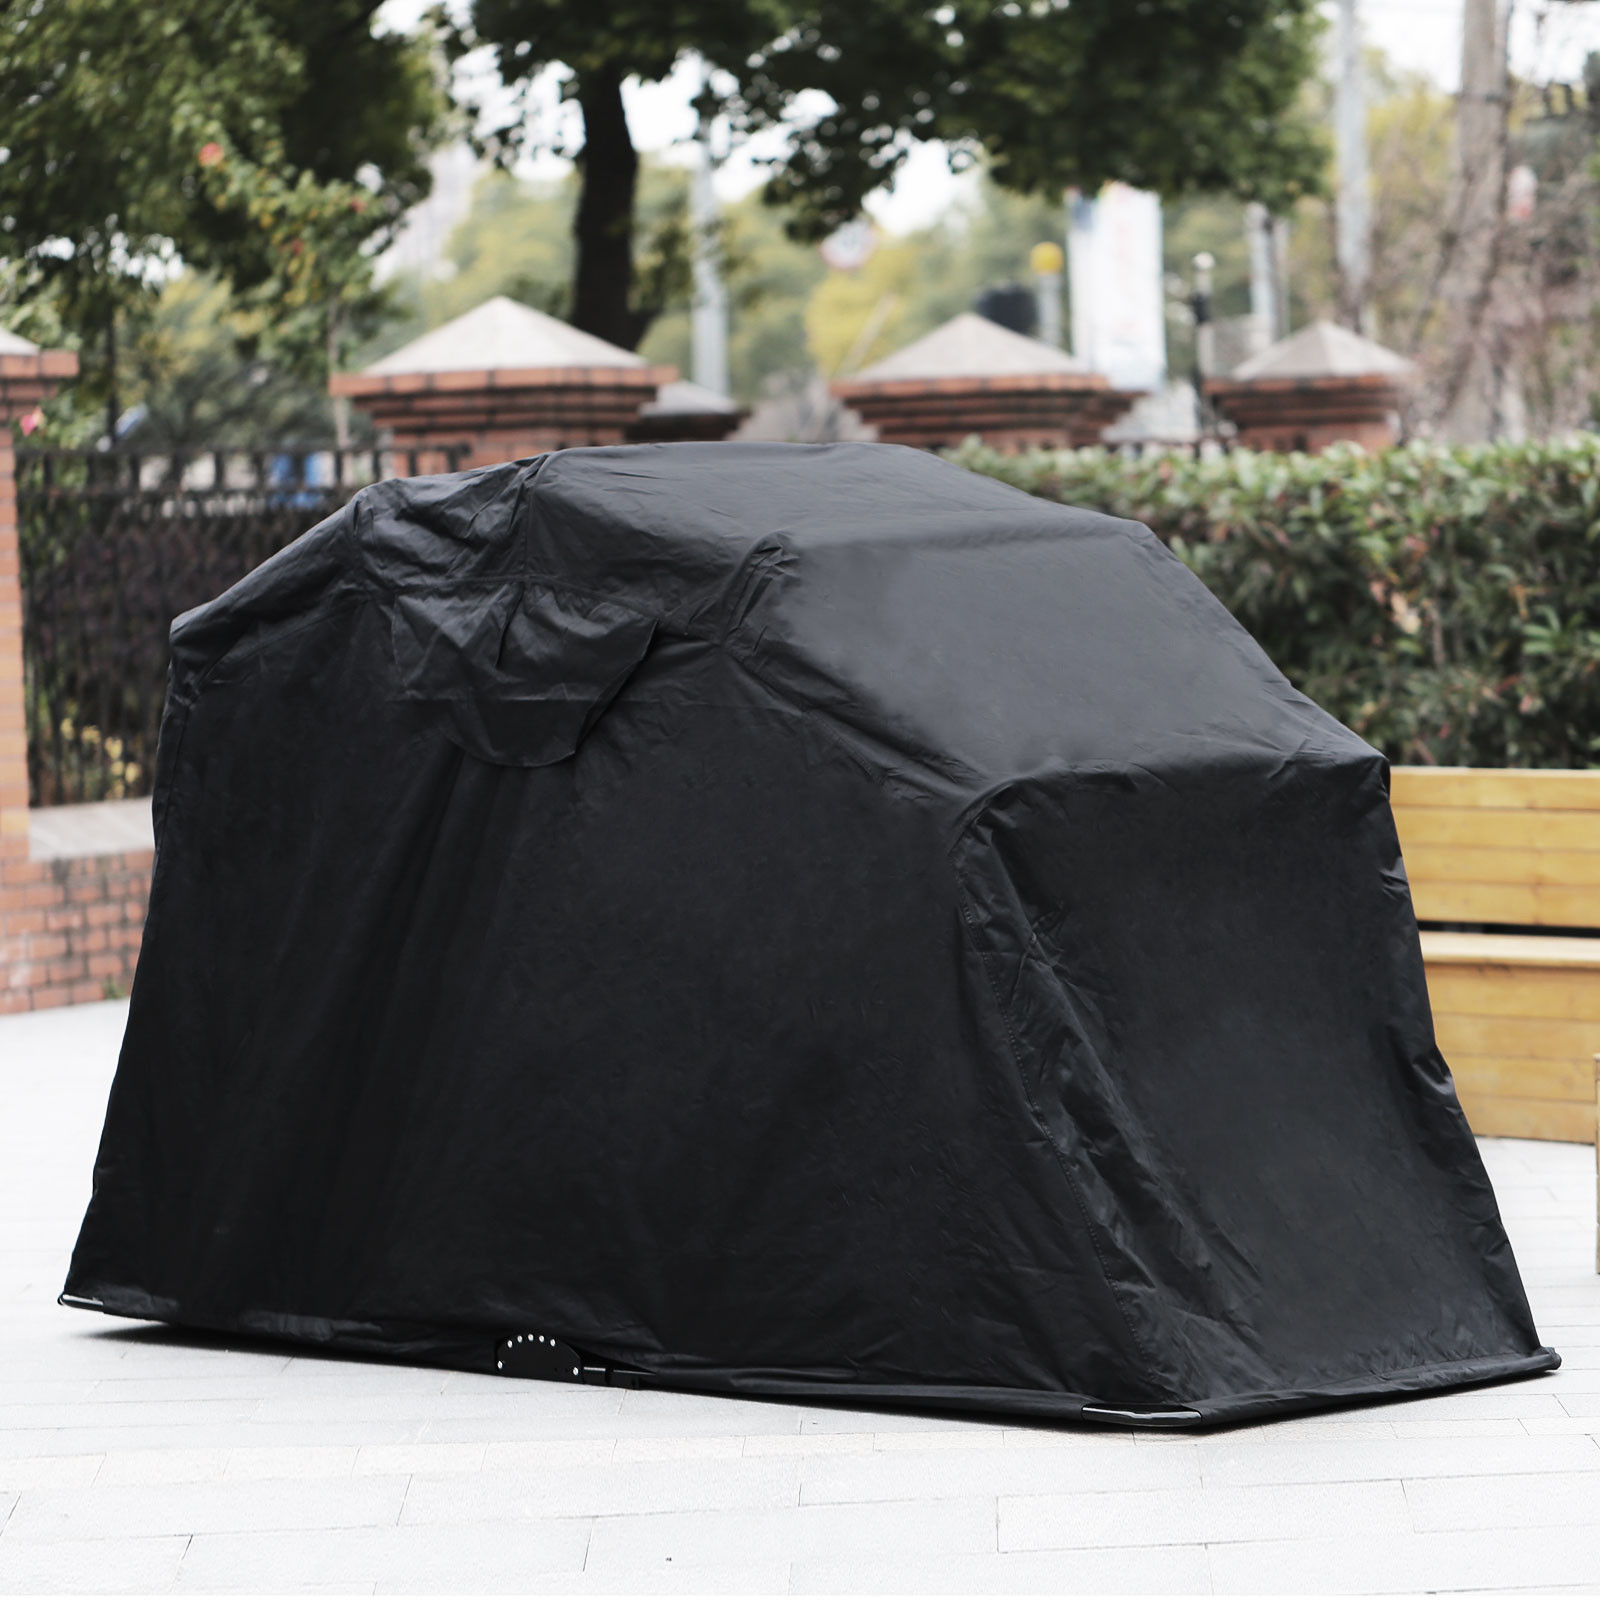 Hard Covered Bike Shelters : Large motorbike bike shelter cover outdoor shed garage